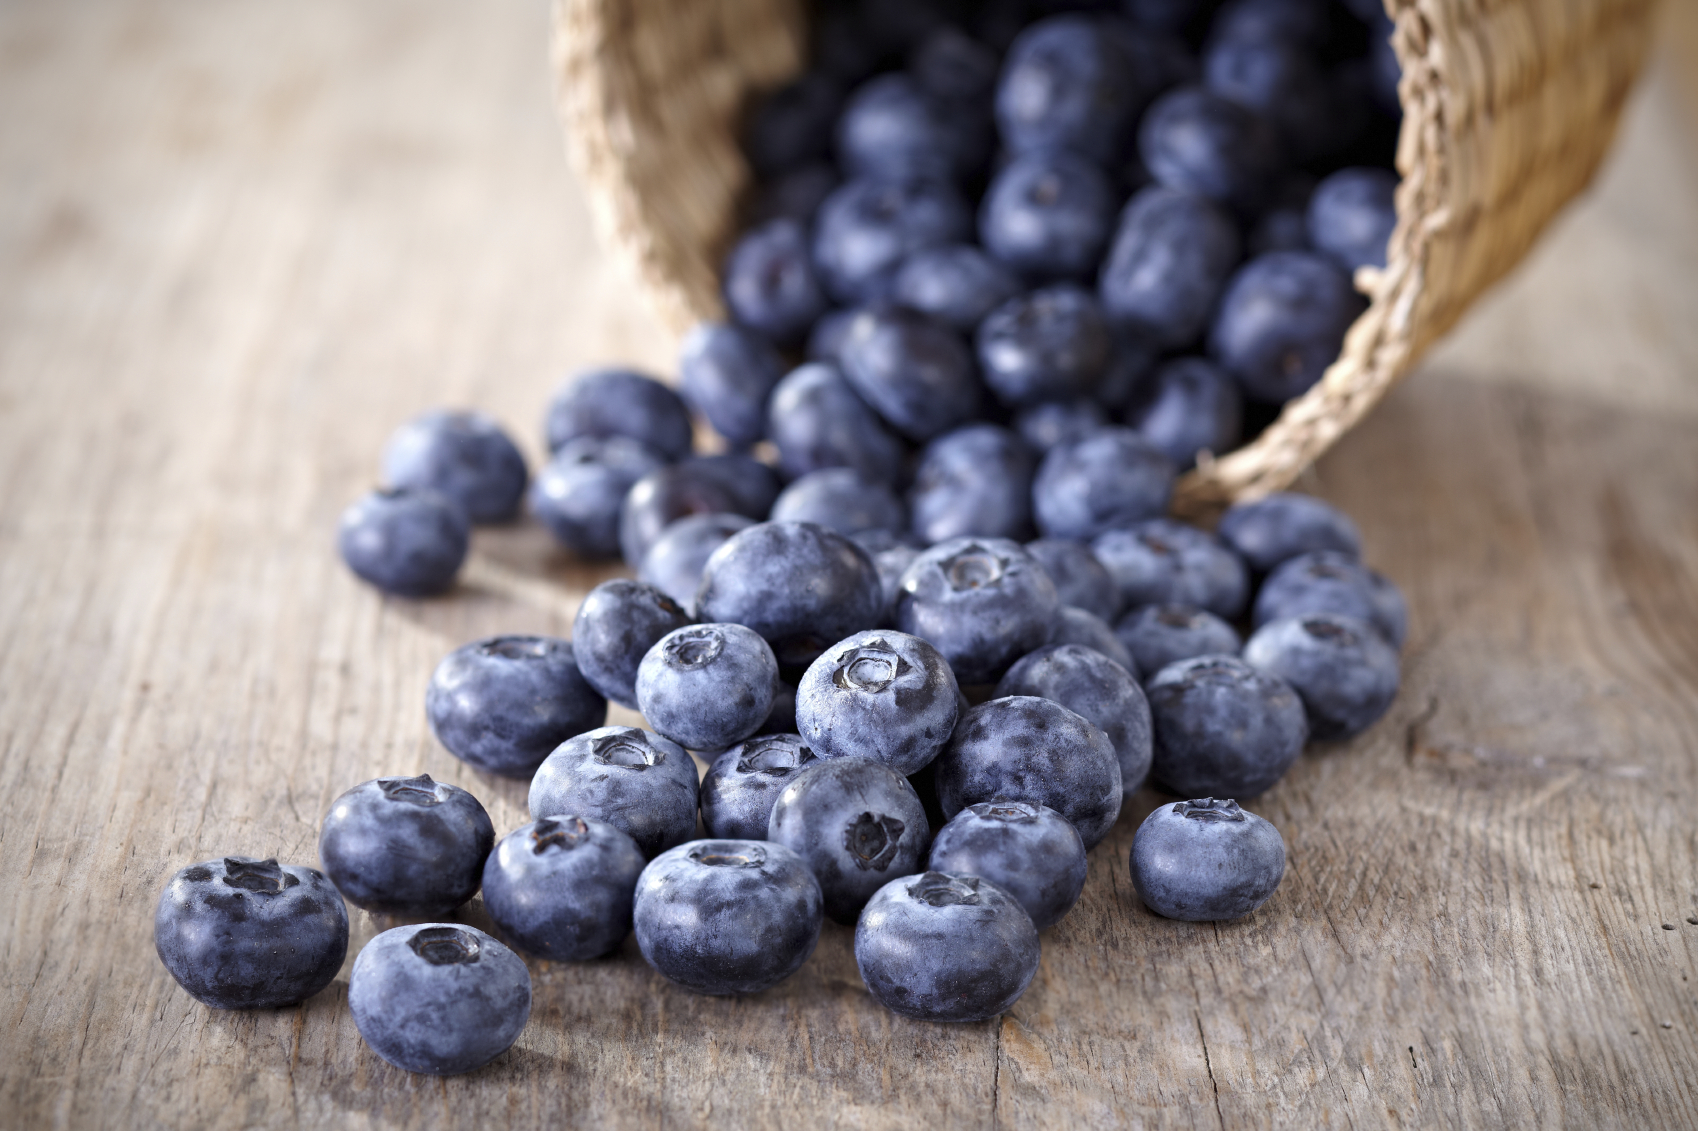 Don't let the mainstream fool you—this antioxidant comes with serious health benefits. New research reveals it can boost your memory and protect your brain.